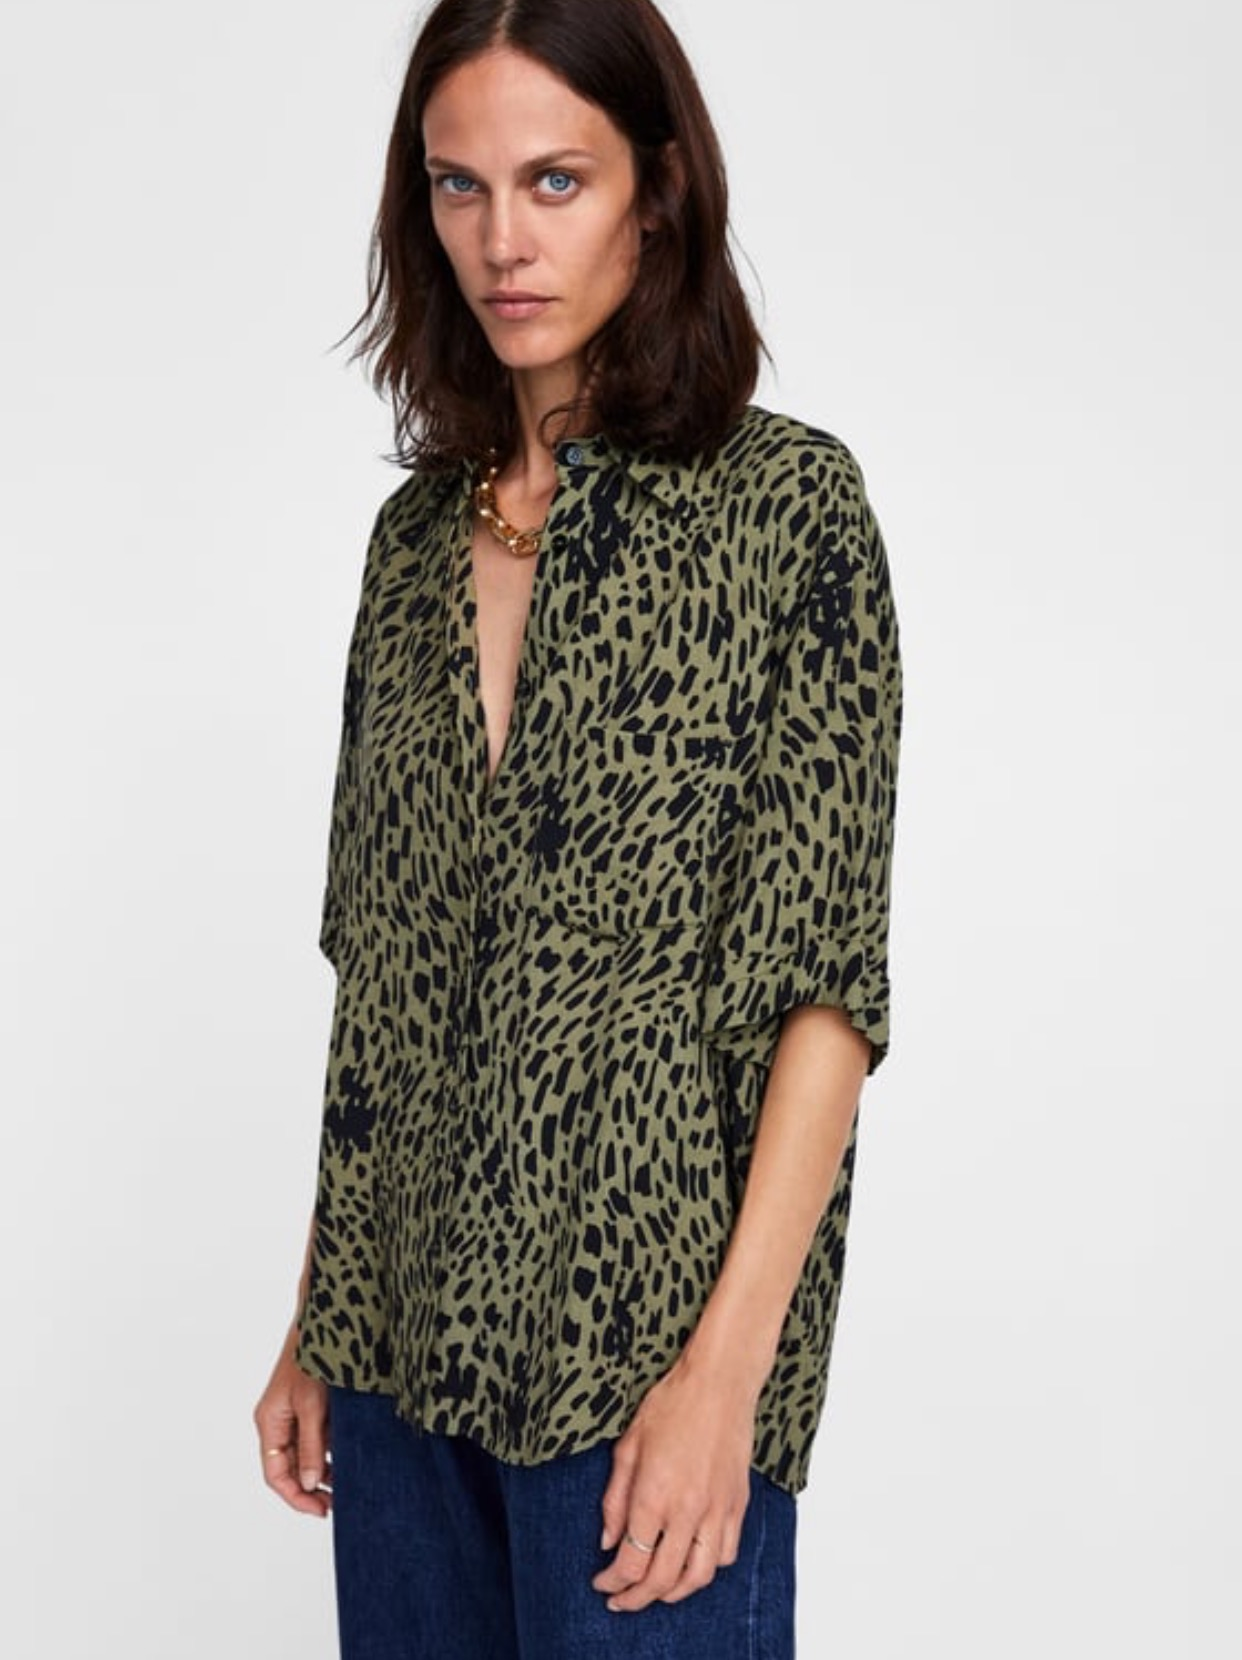 Animal Print Pieces You Will Love